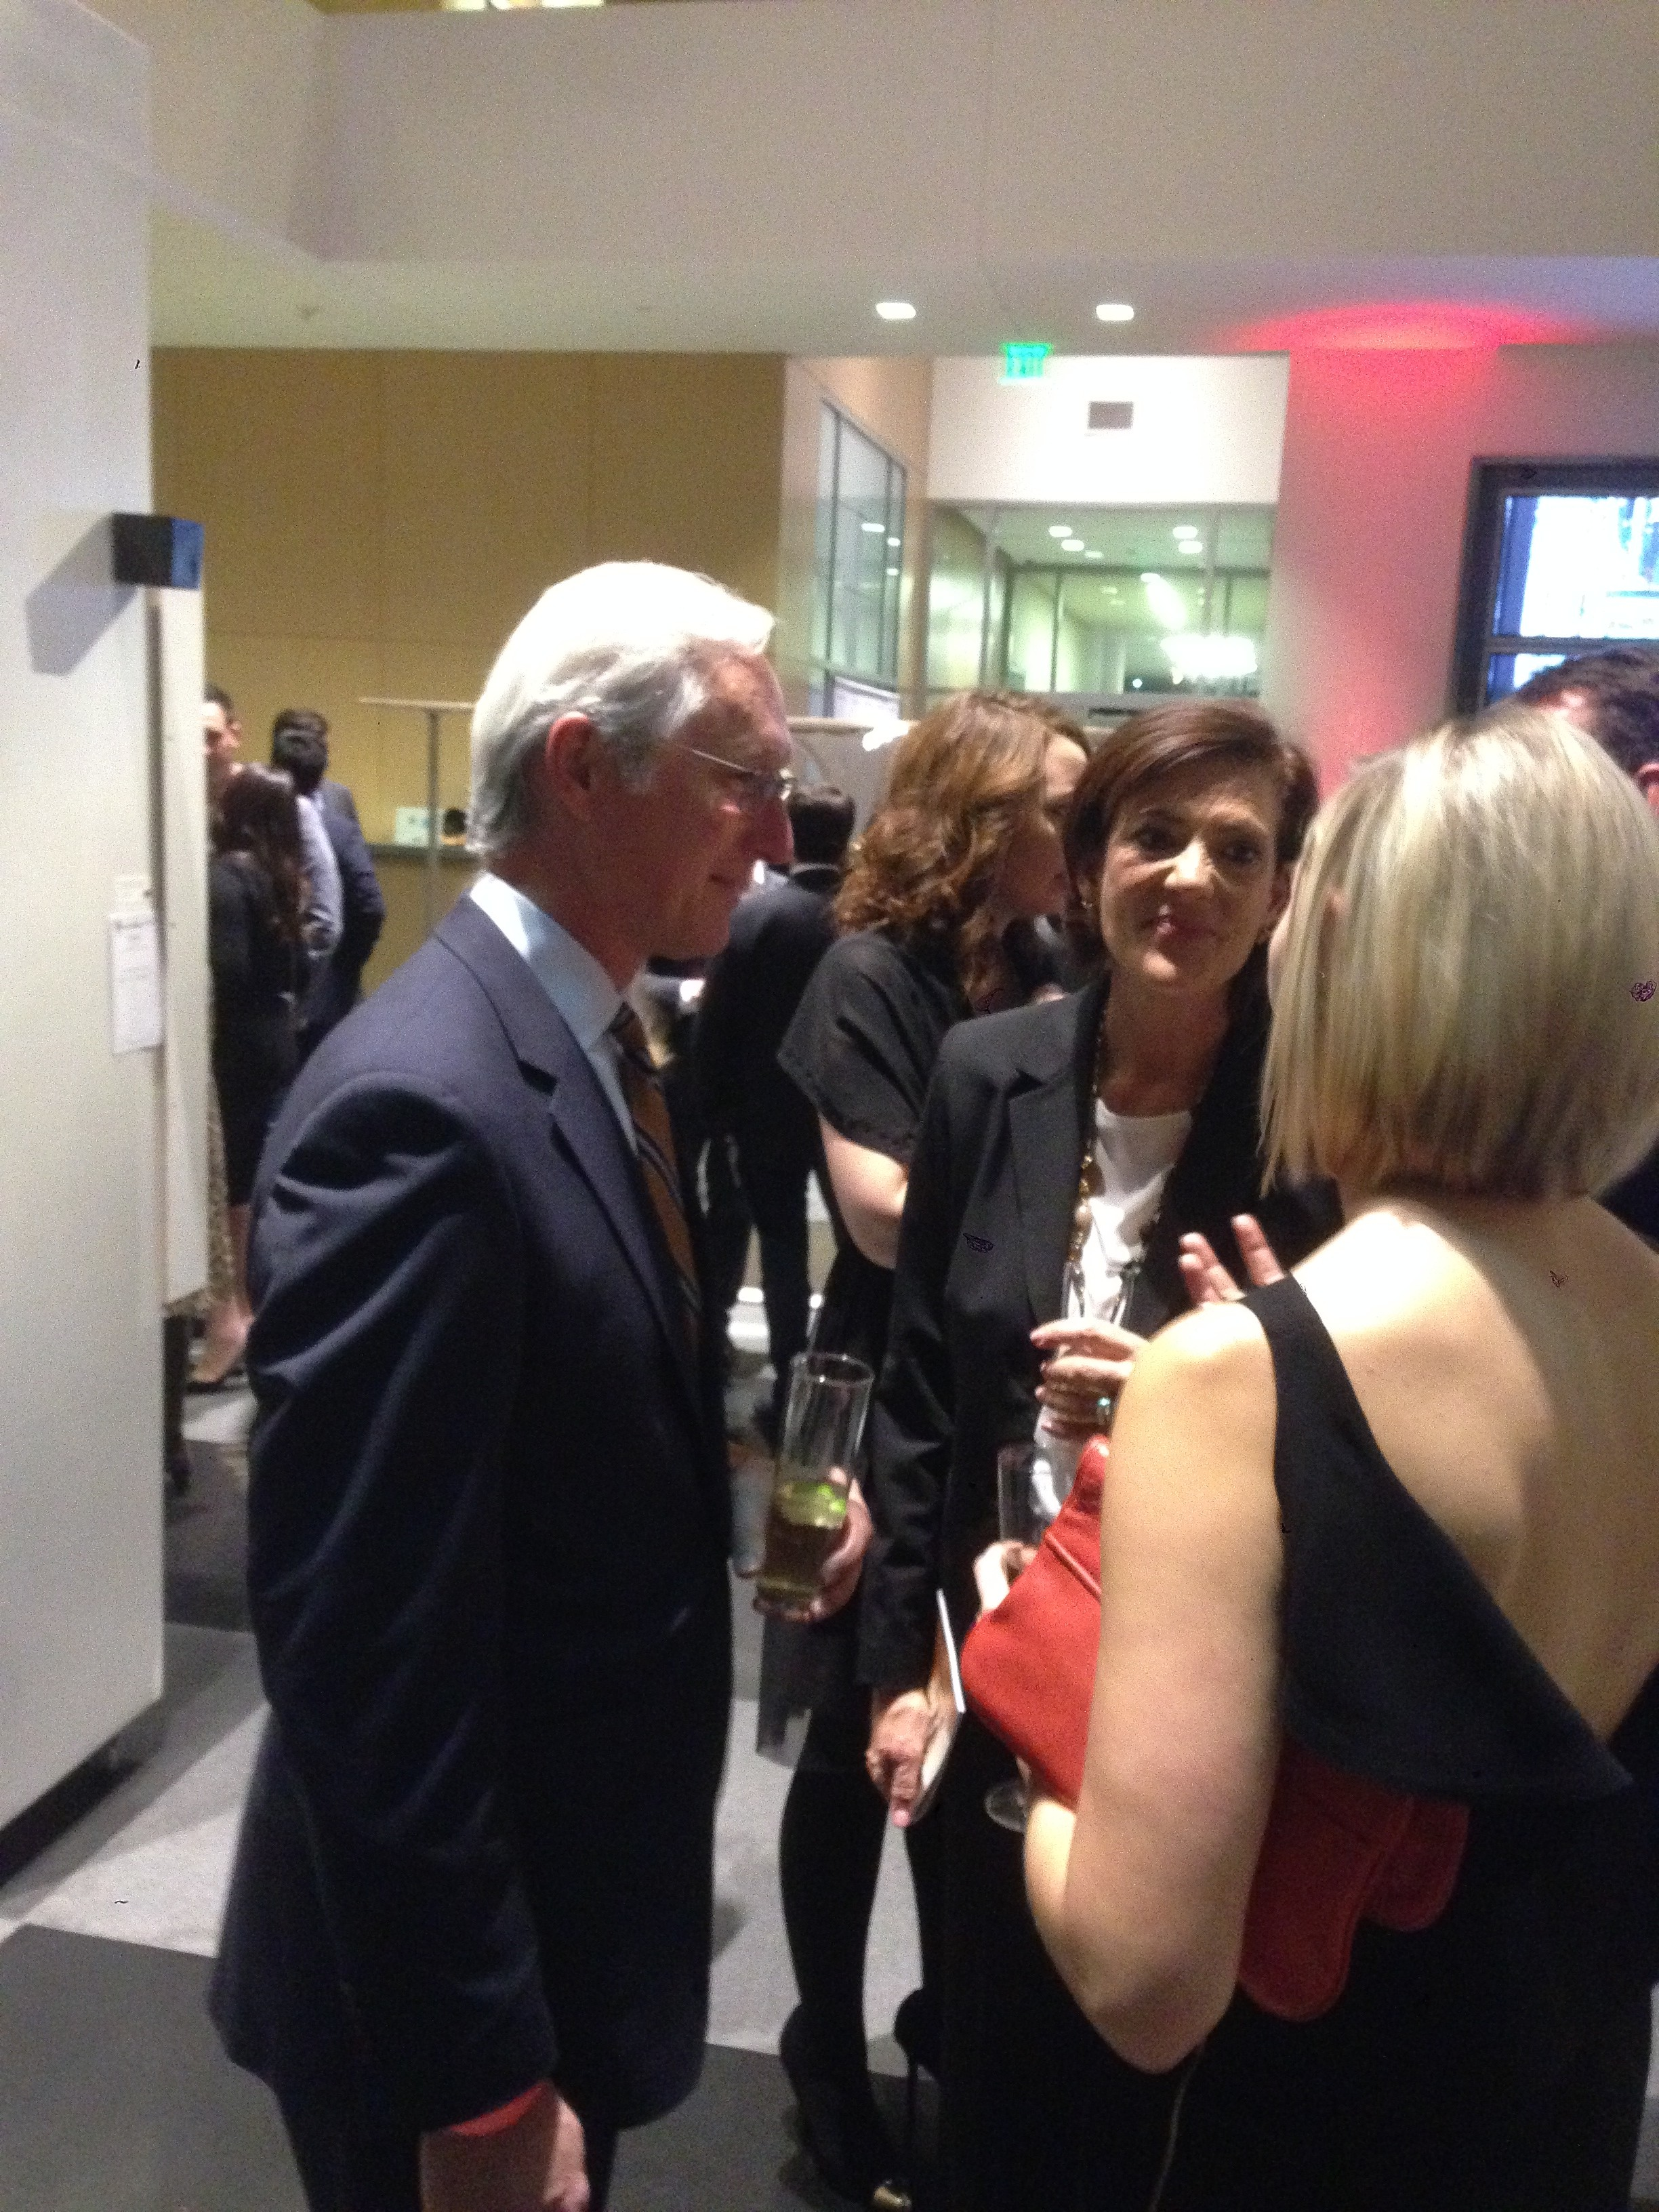 Architect Tip Housewright, a principal and partner of OMNIPLAN, joining the animated crowd at the event.